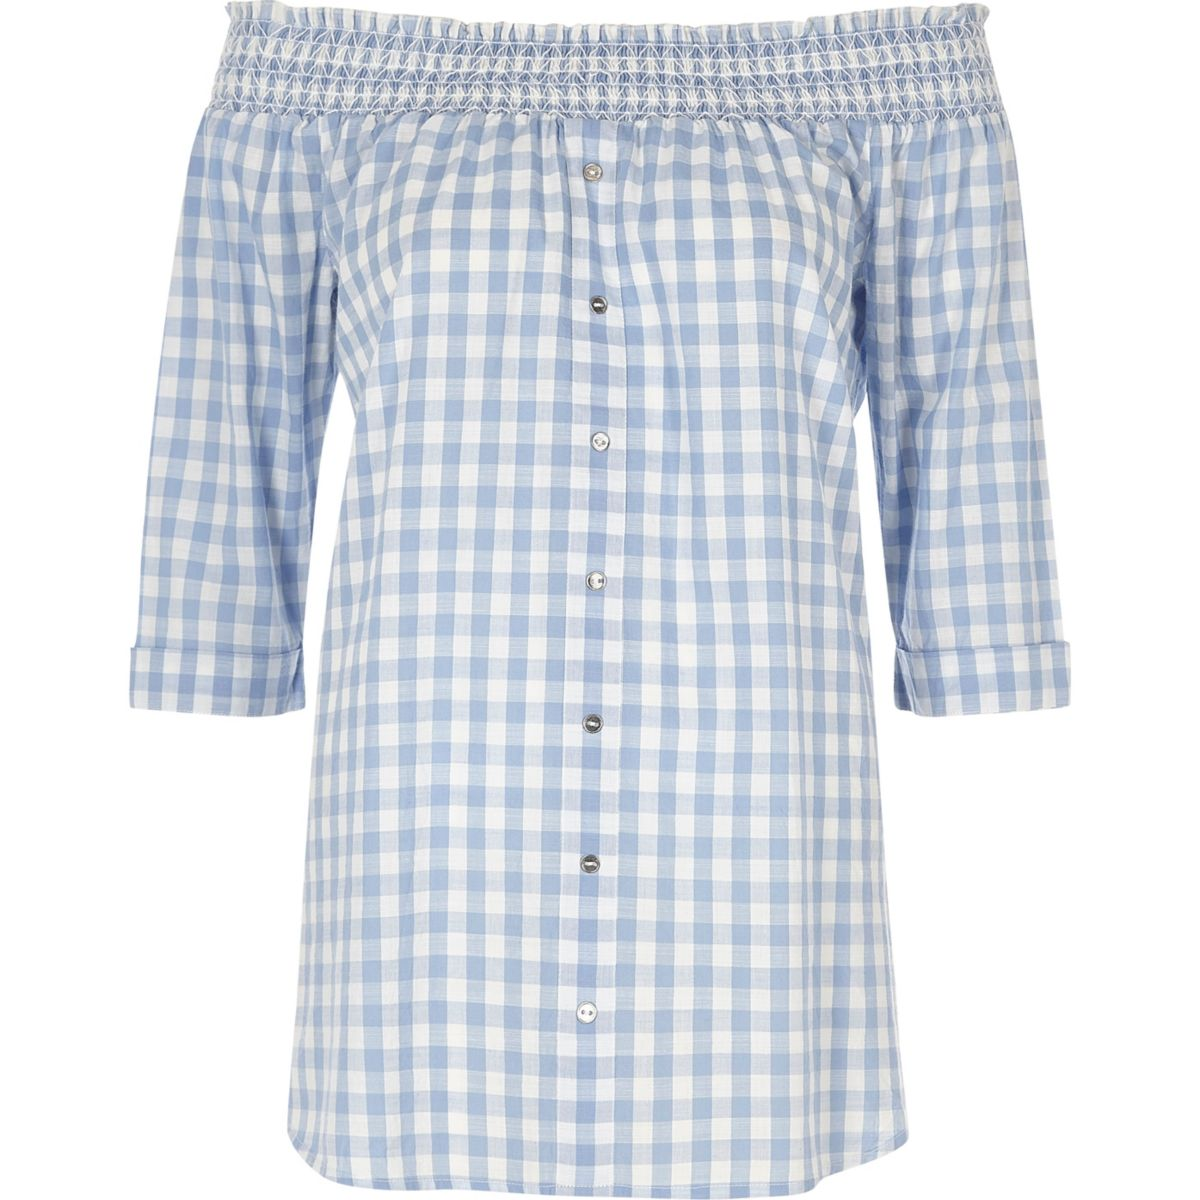 Blue gingham shirred bardot top